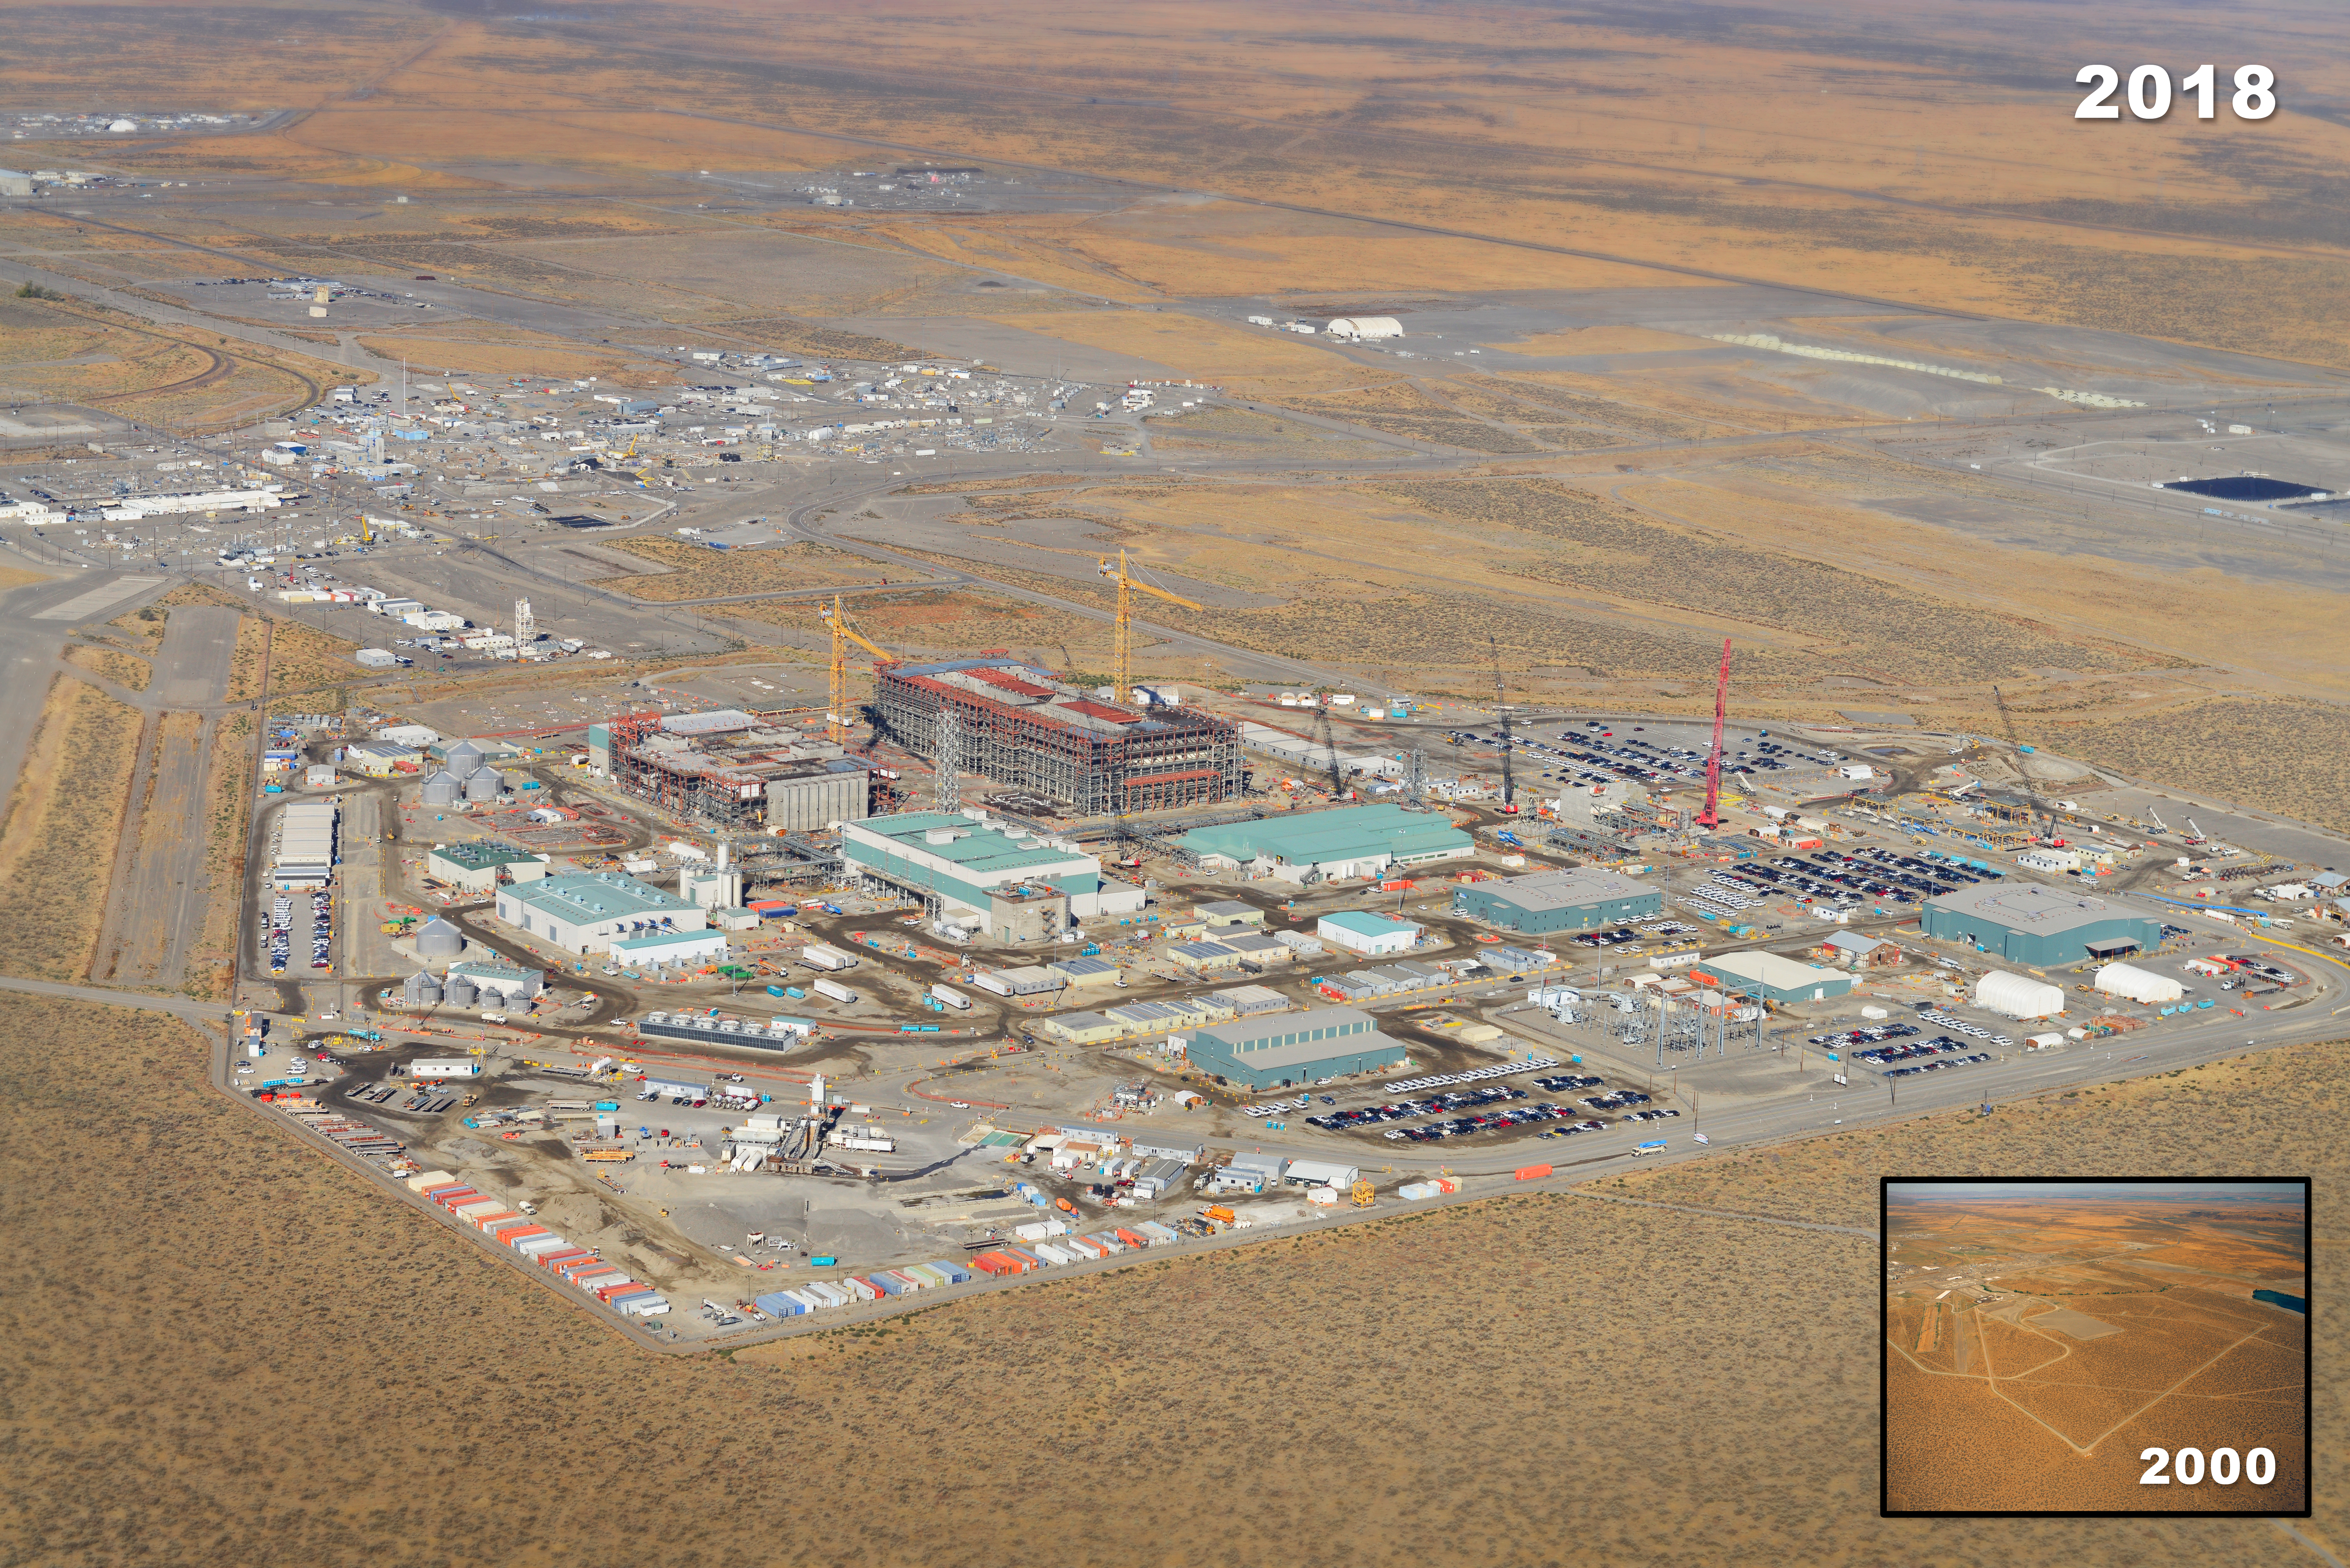 Hanford's Waste Treatment and Immobilization Plant is preparing to start treating tank waste as early as 2022. (Courtesy U.S. Department of Energy)